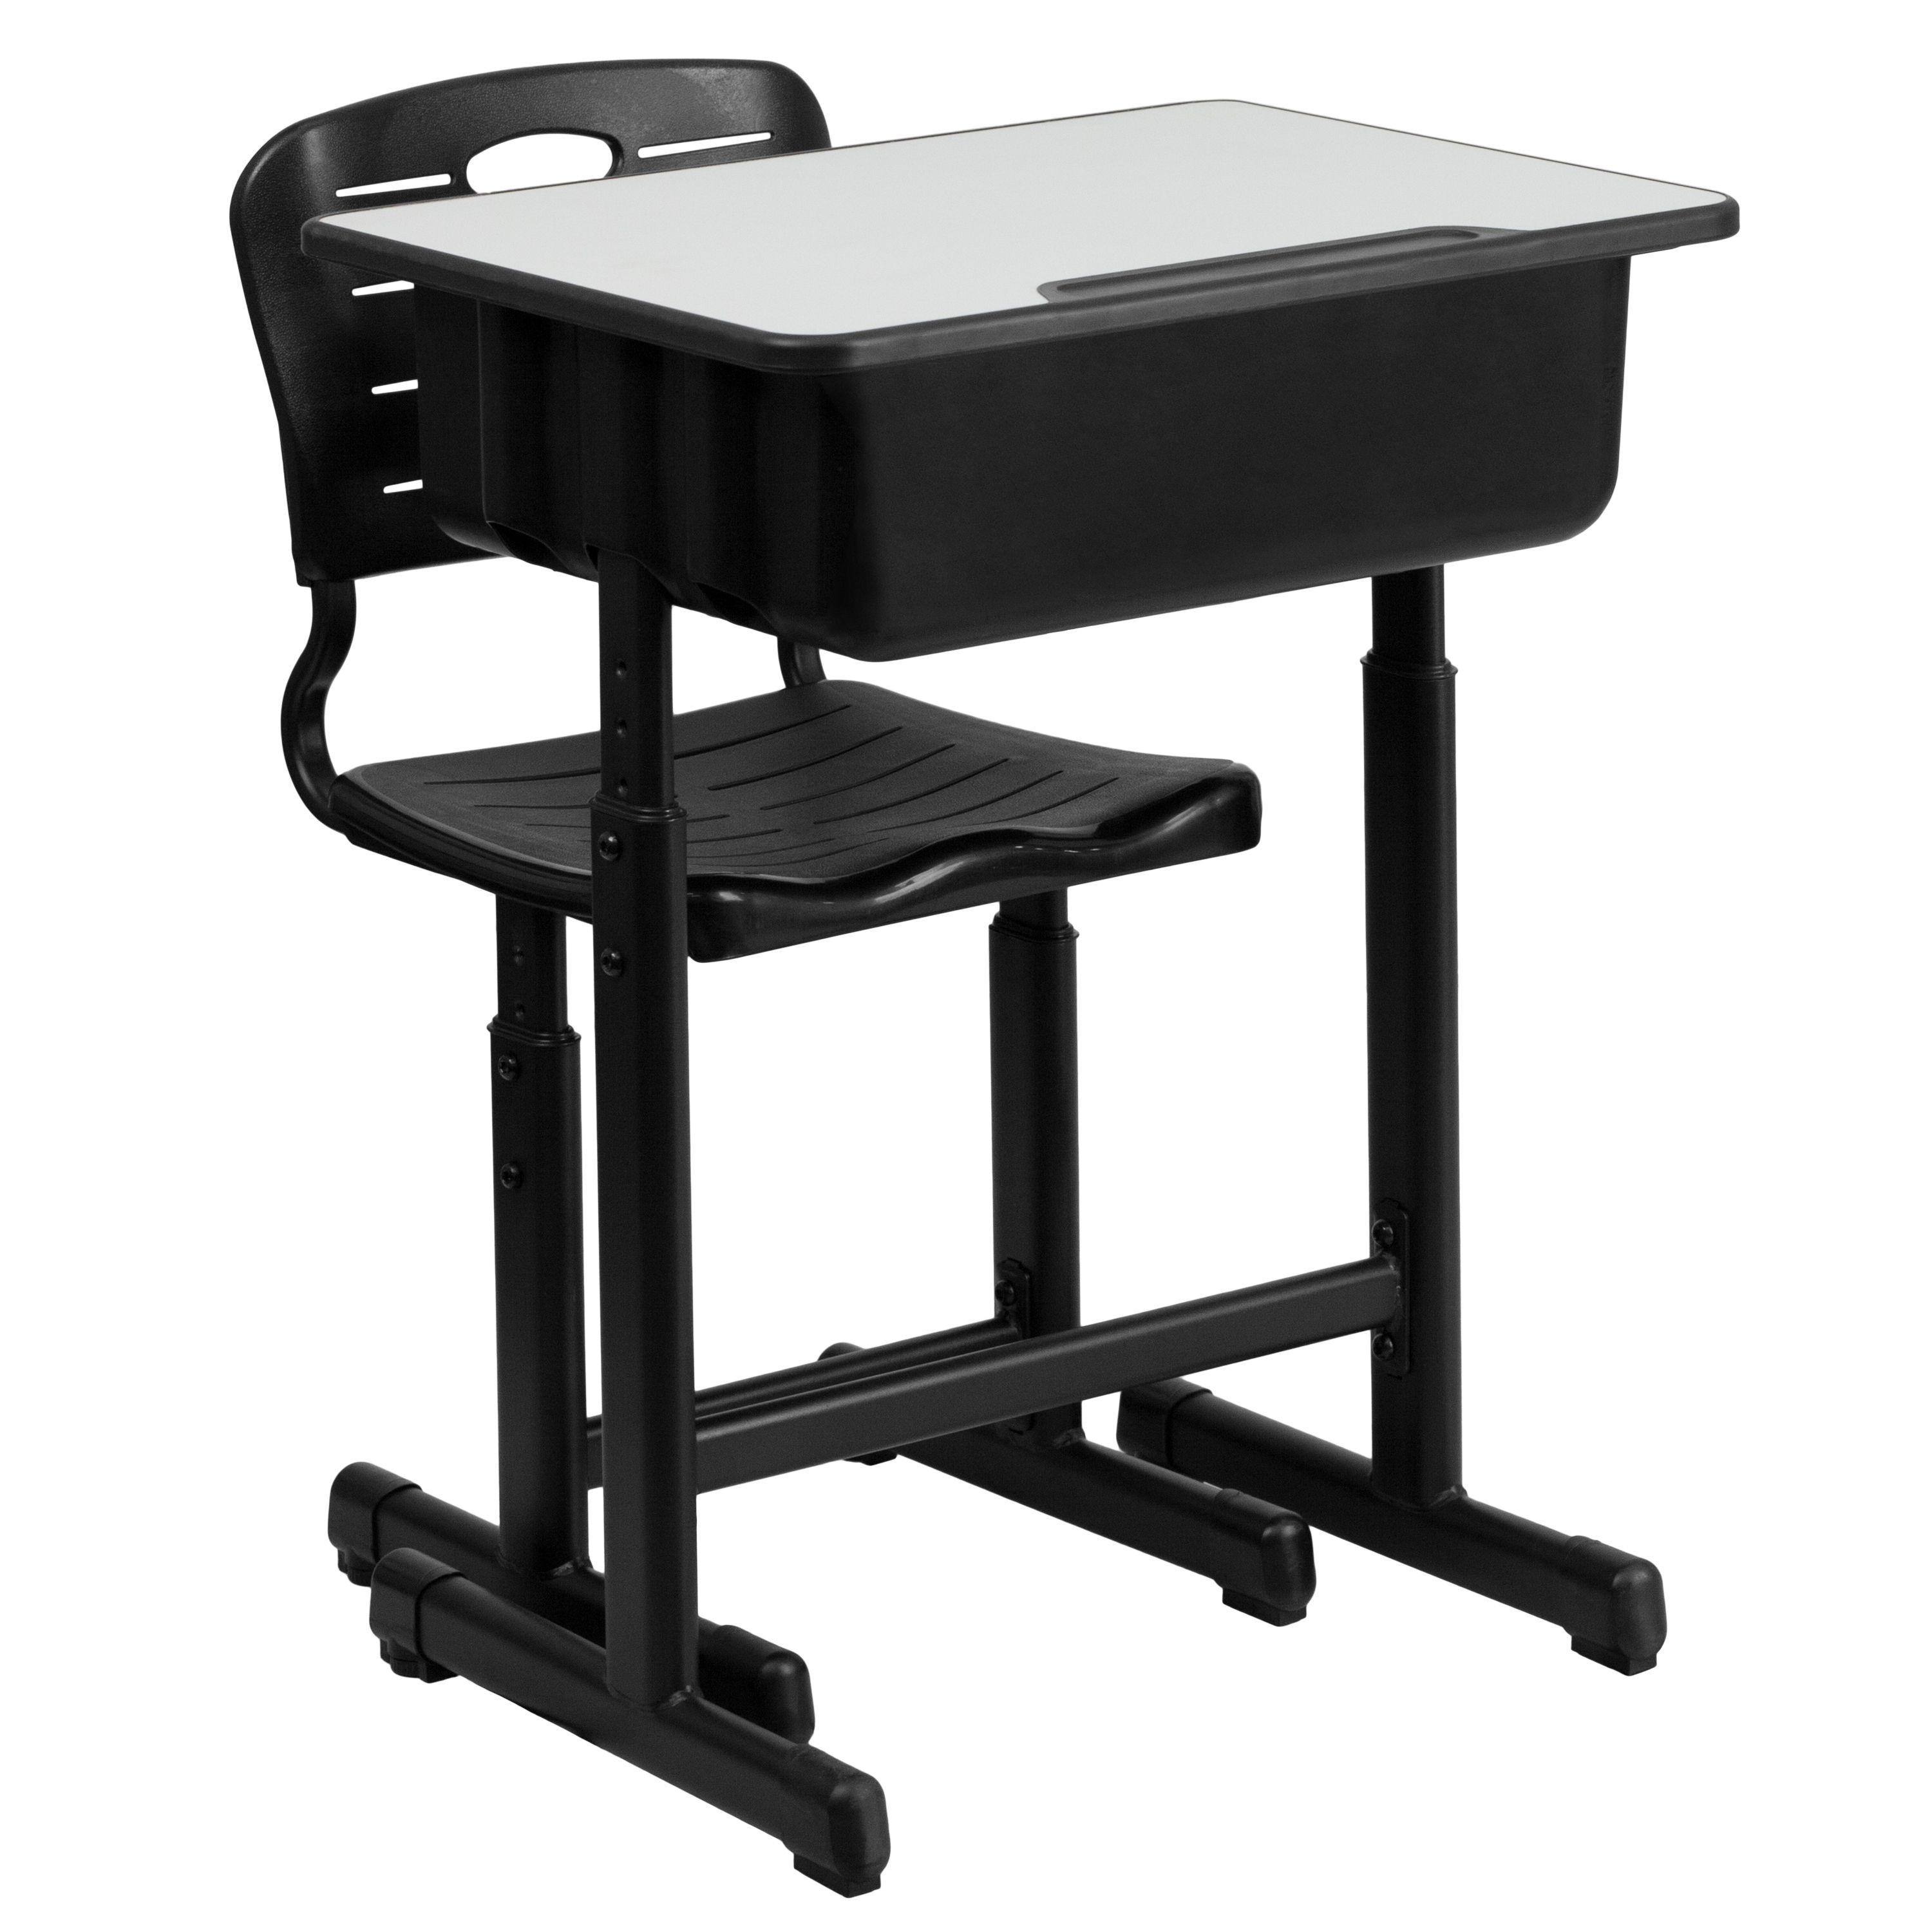 """Adjustable Height Student Desk and Chair 23.63""""W x 17.75"""